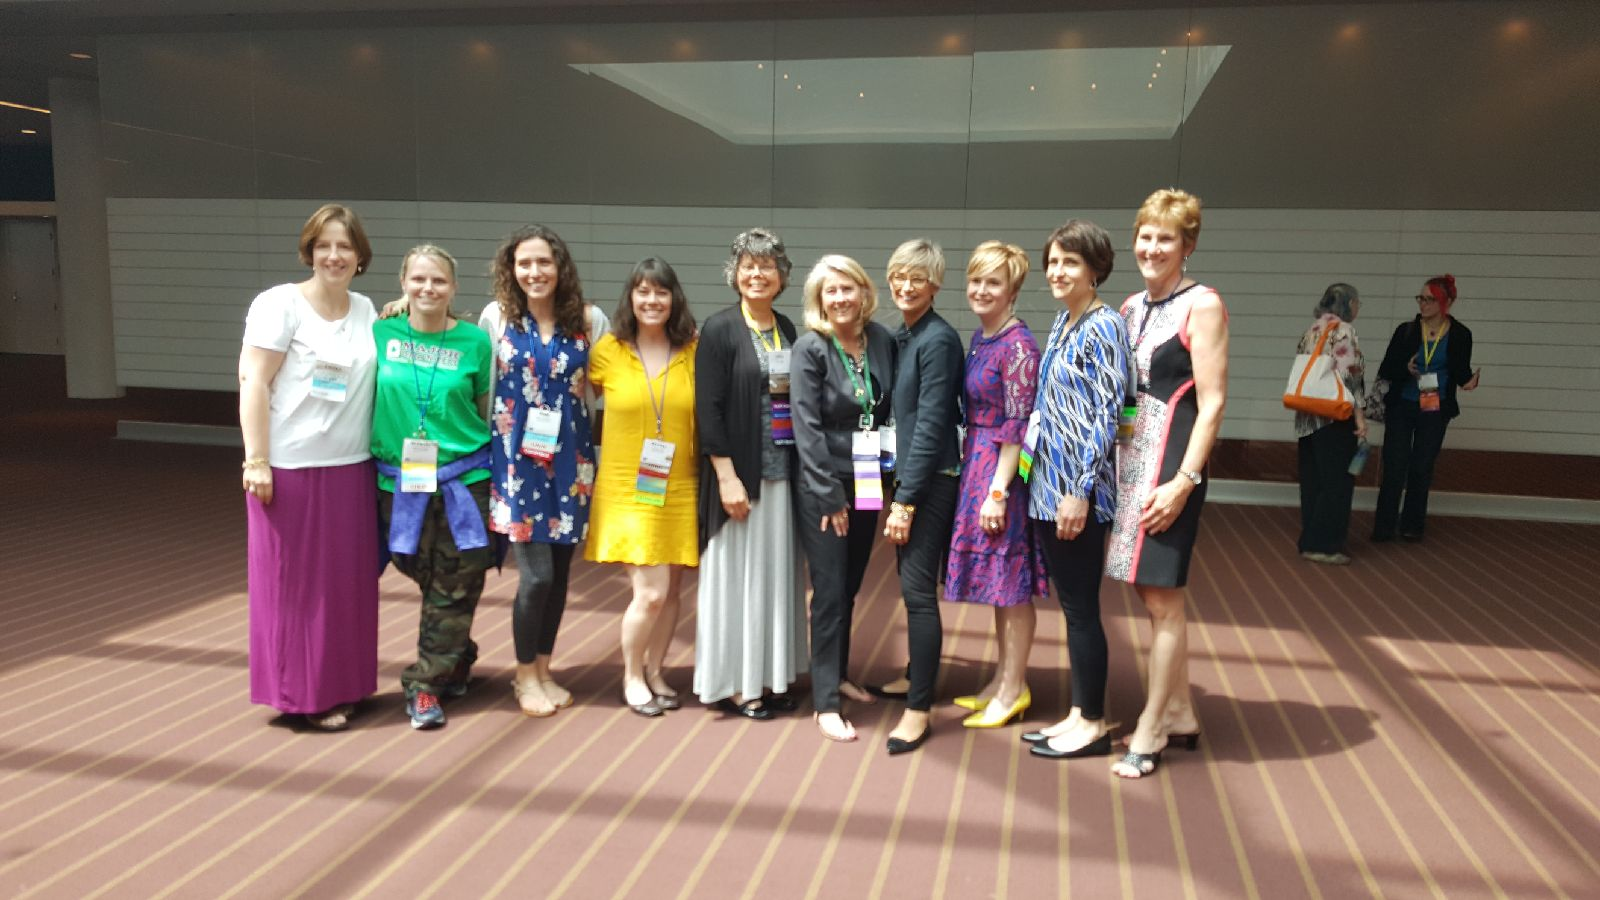 NAPO 2017 (Pittsburgh + Professional Organizers = Happy Fun!)